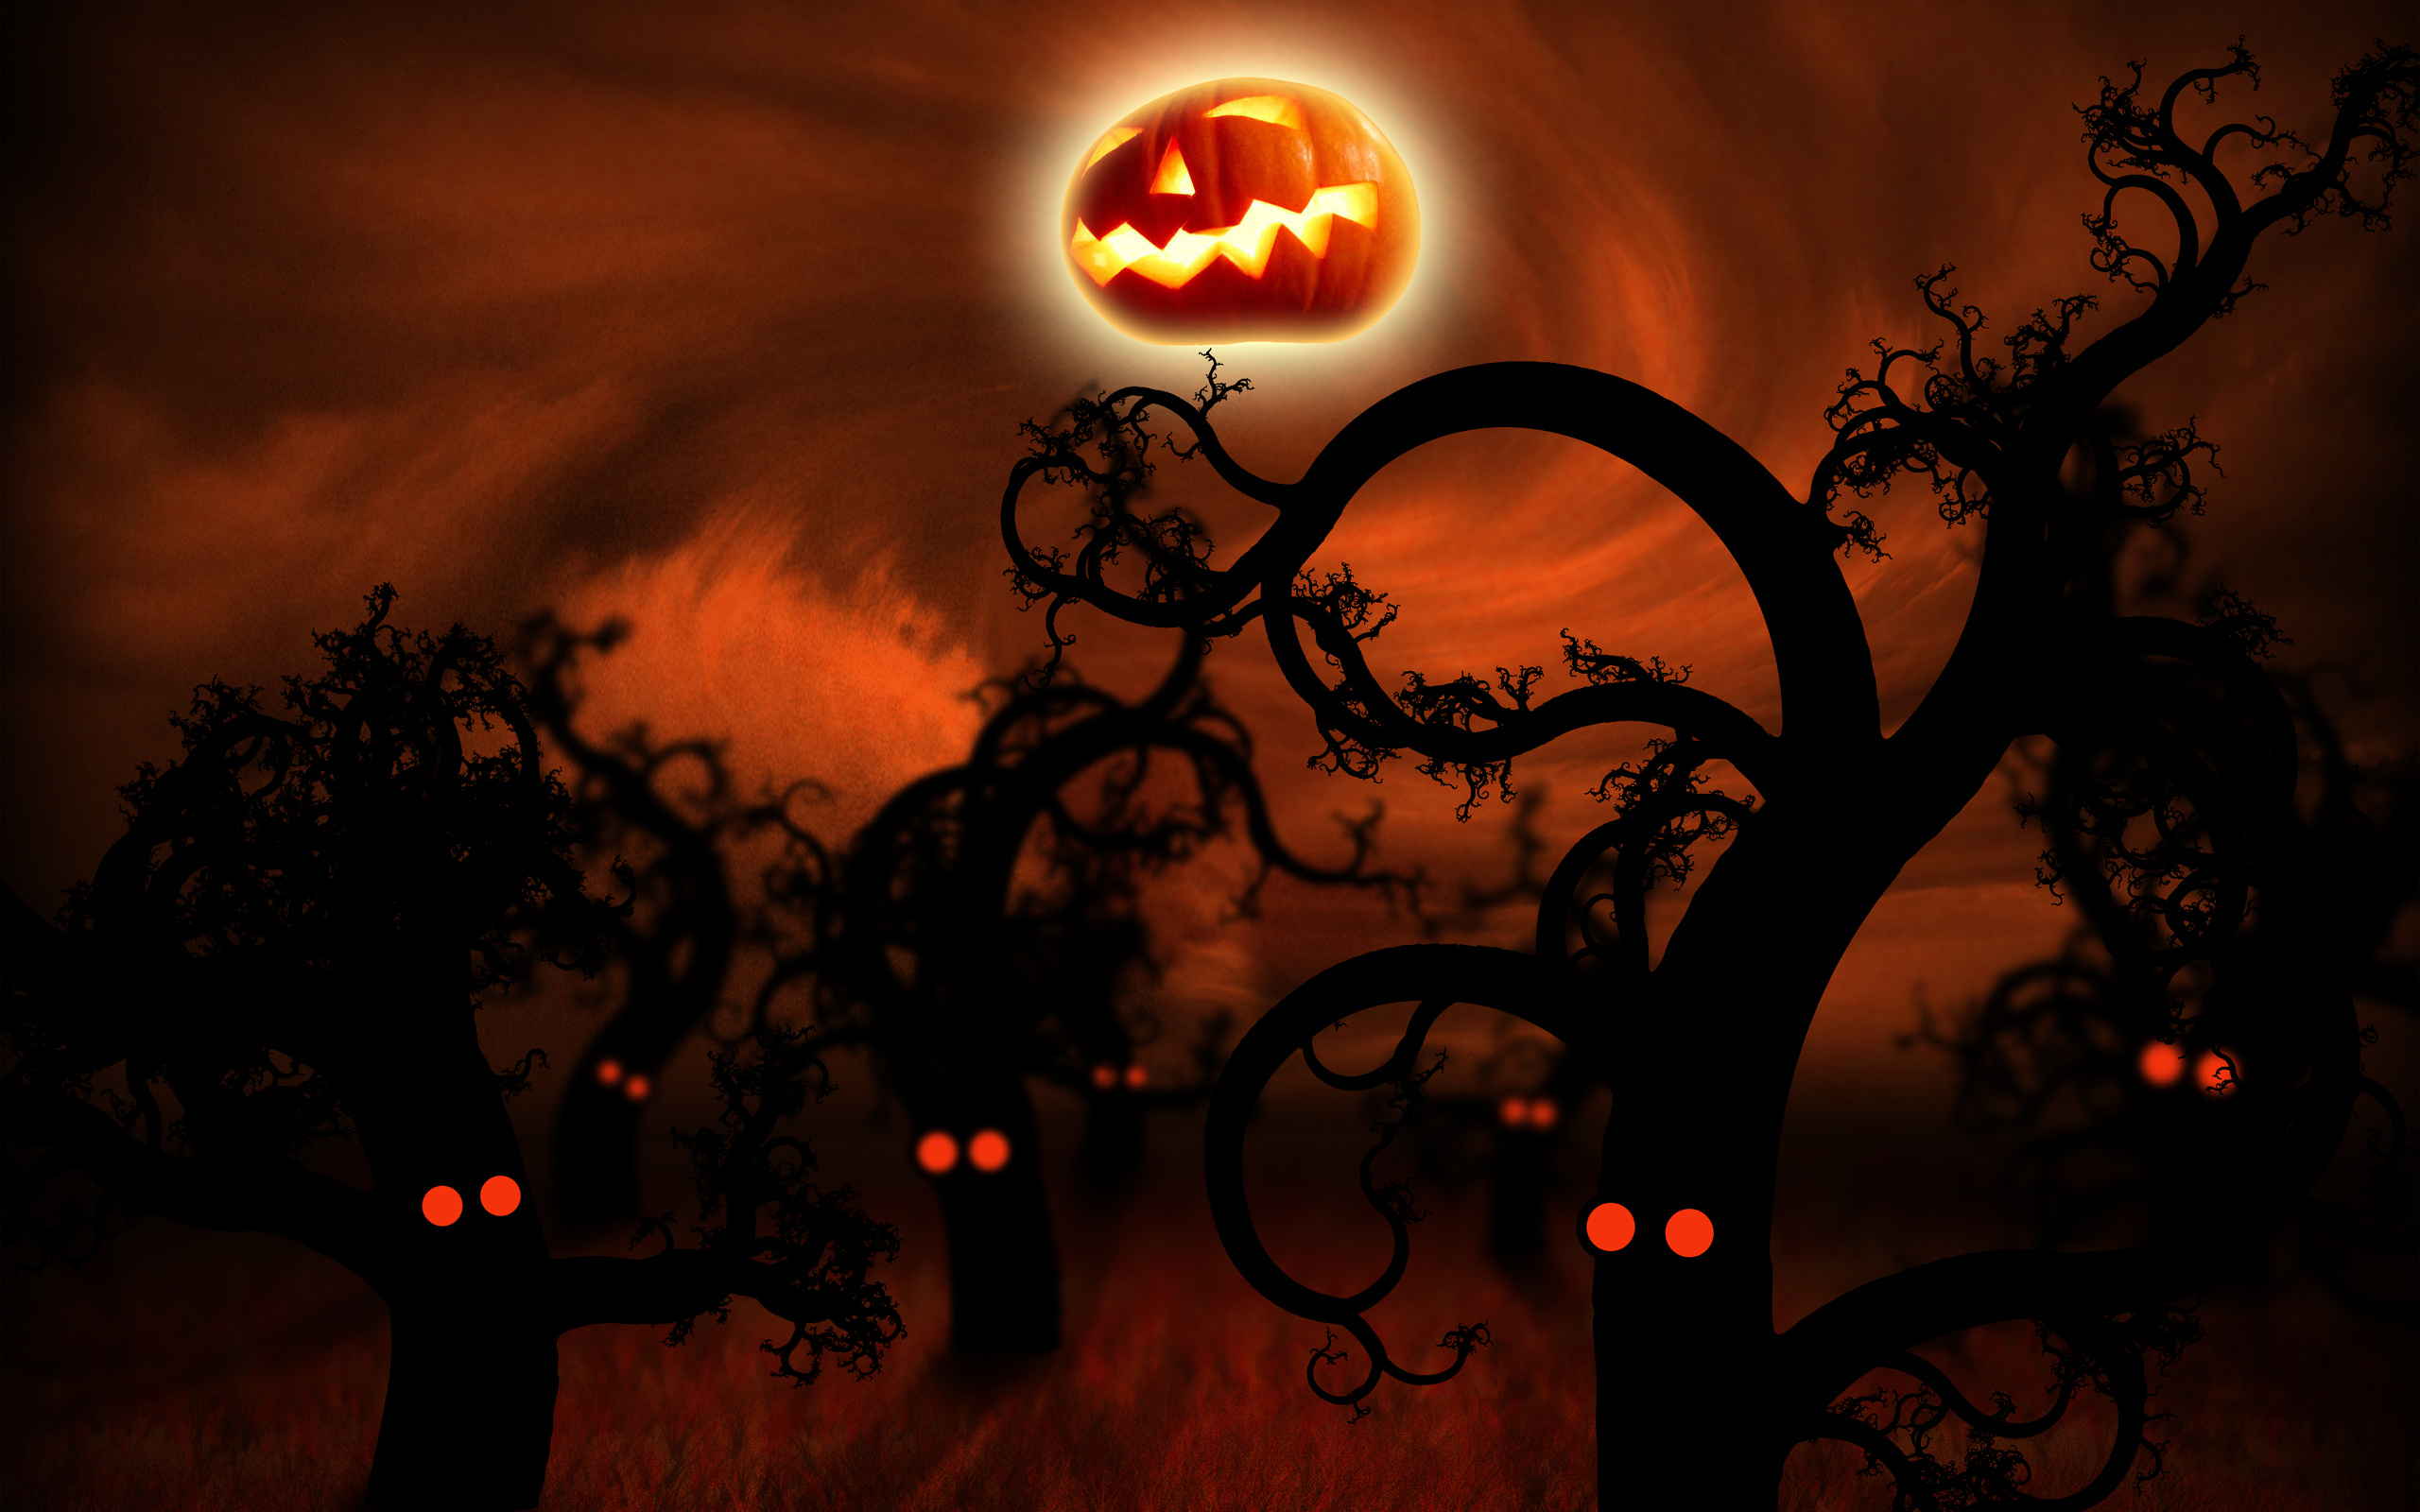 Scary Halloween Images HD